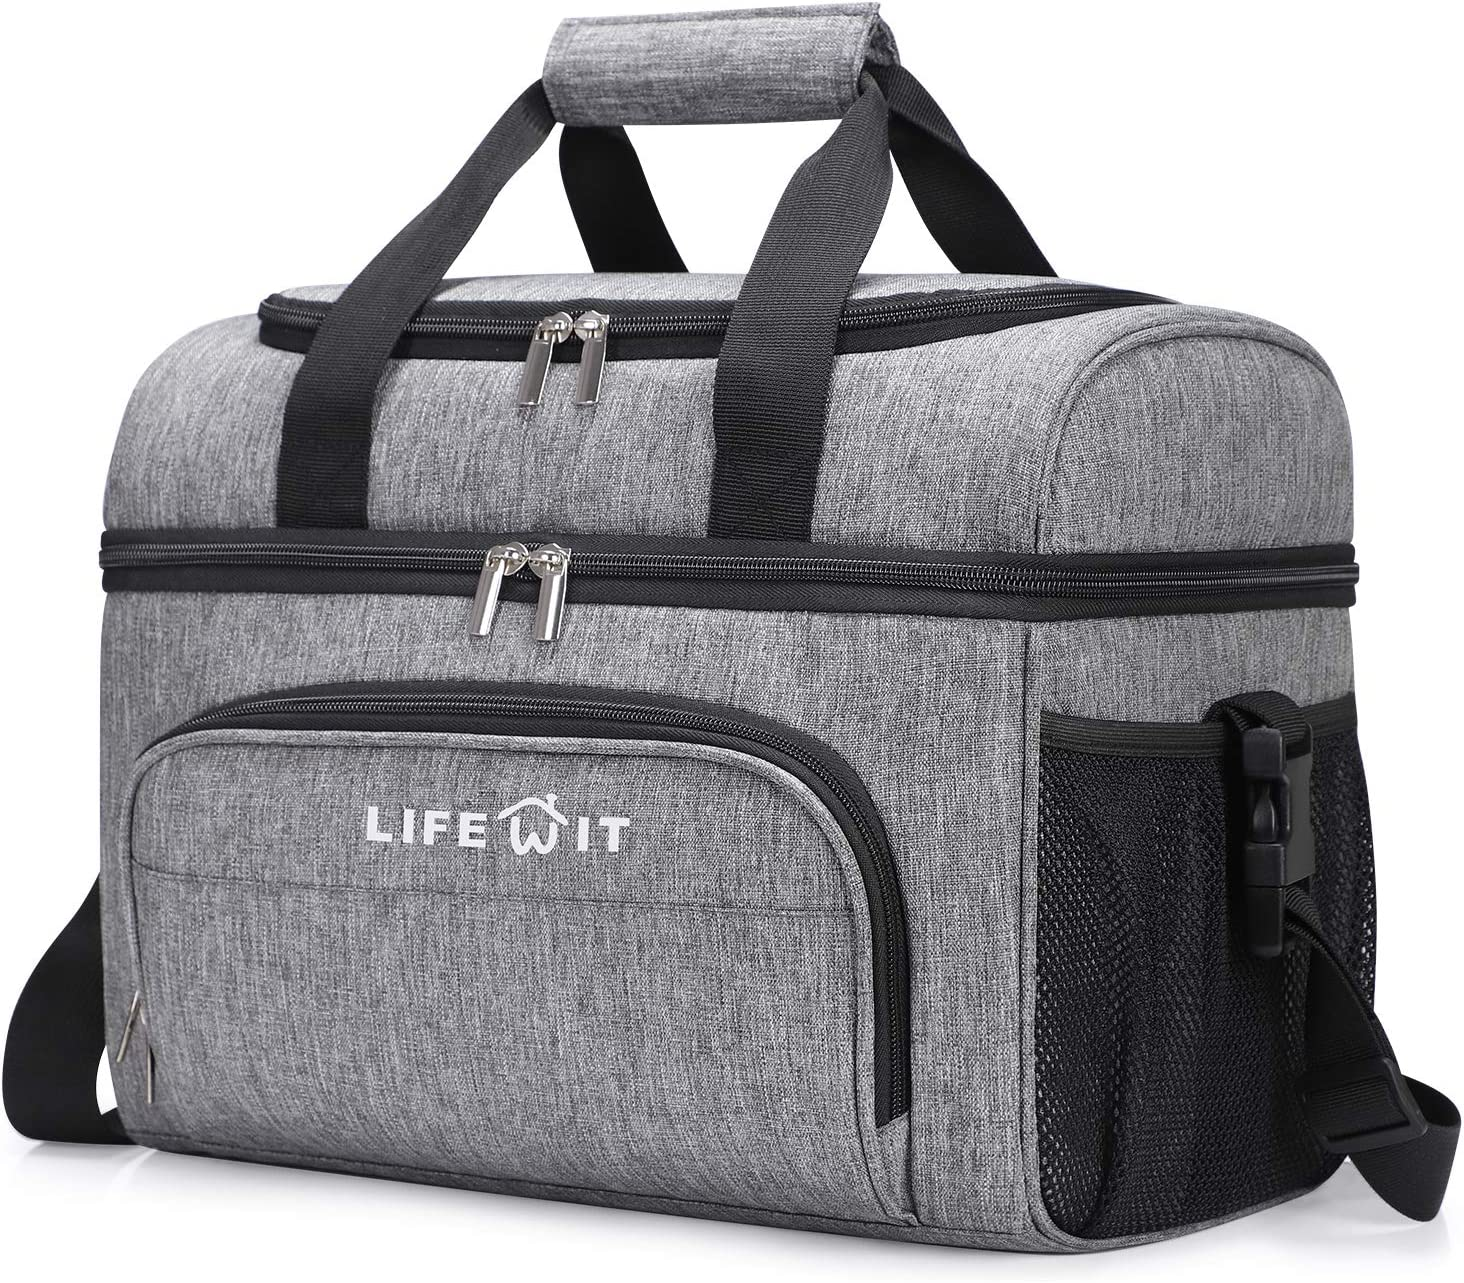 Lifewit Collapsible Cooler Bag 48-Can Insulated Leakproof Soft Cooler Portable Double Decker Cooler Tote for Beach/Picnic/Sports, Grey